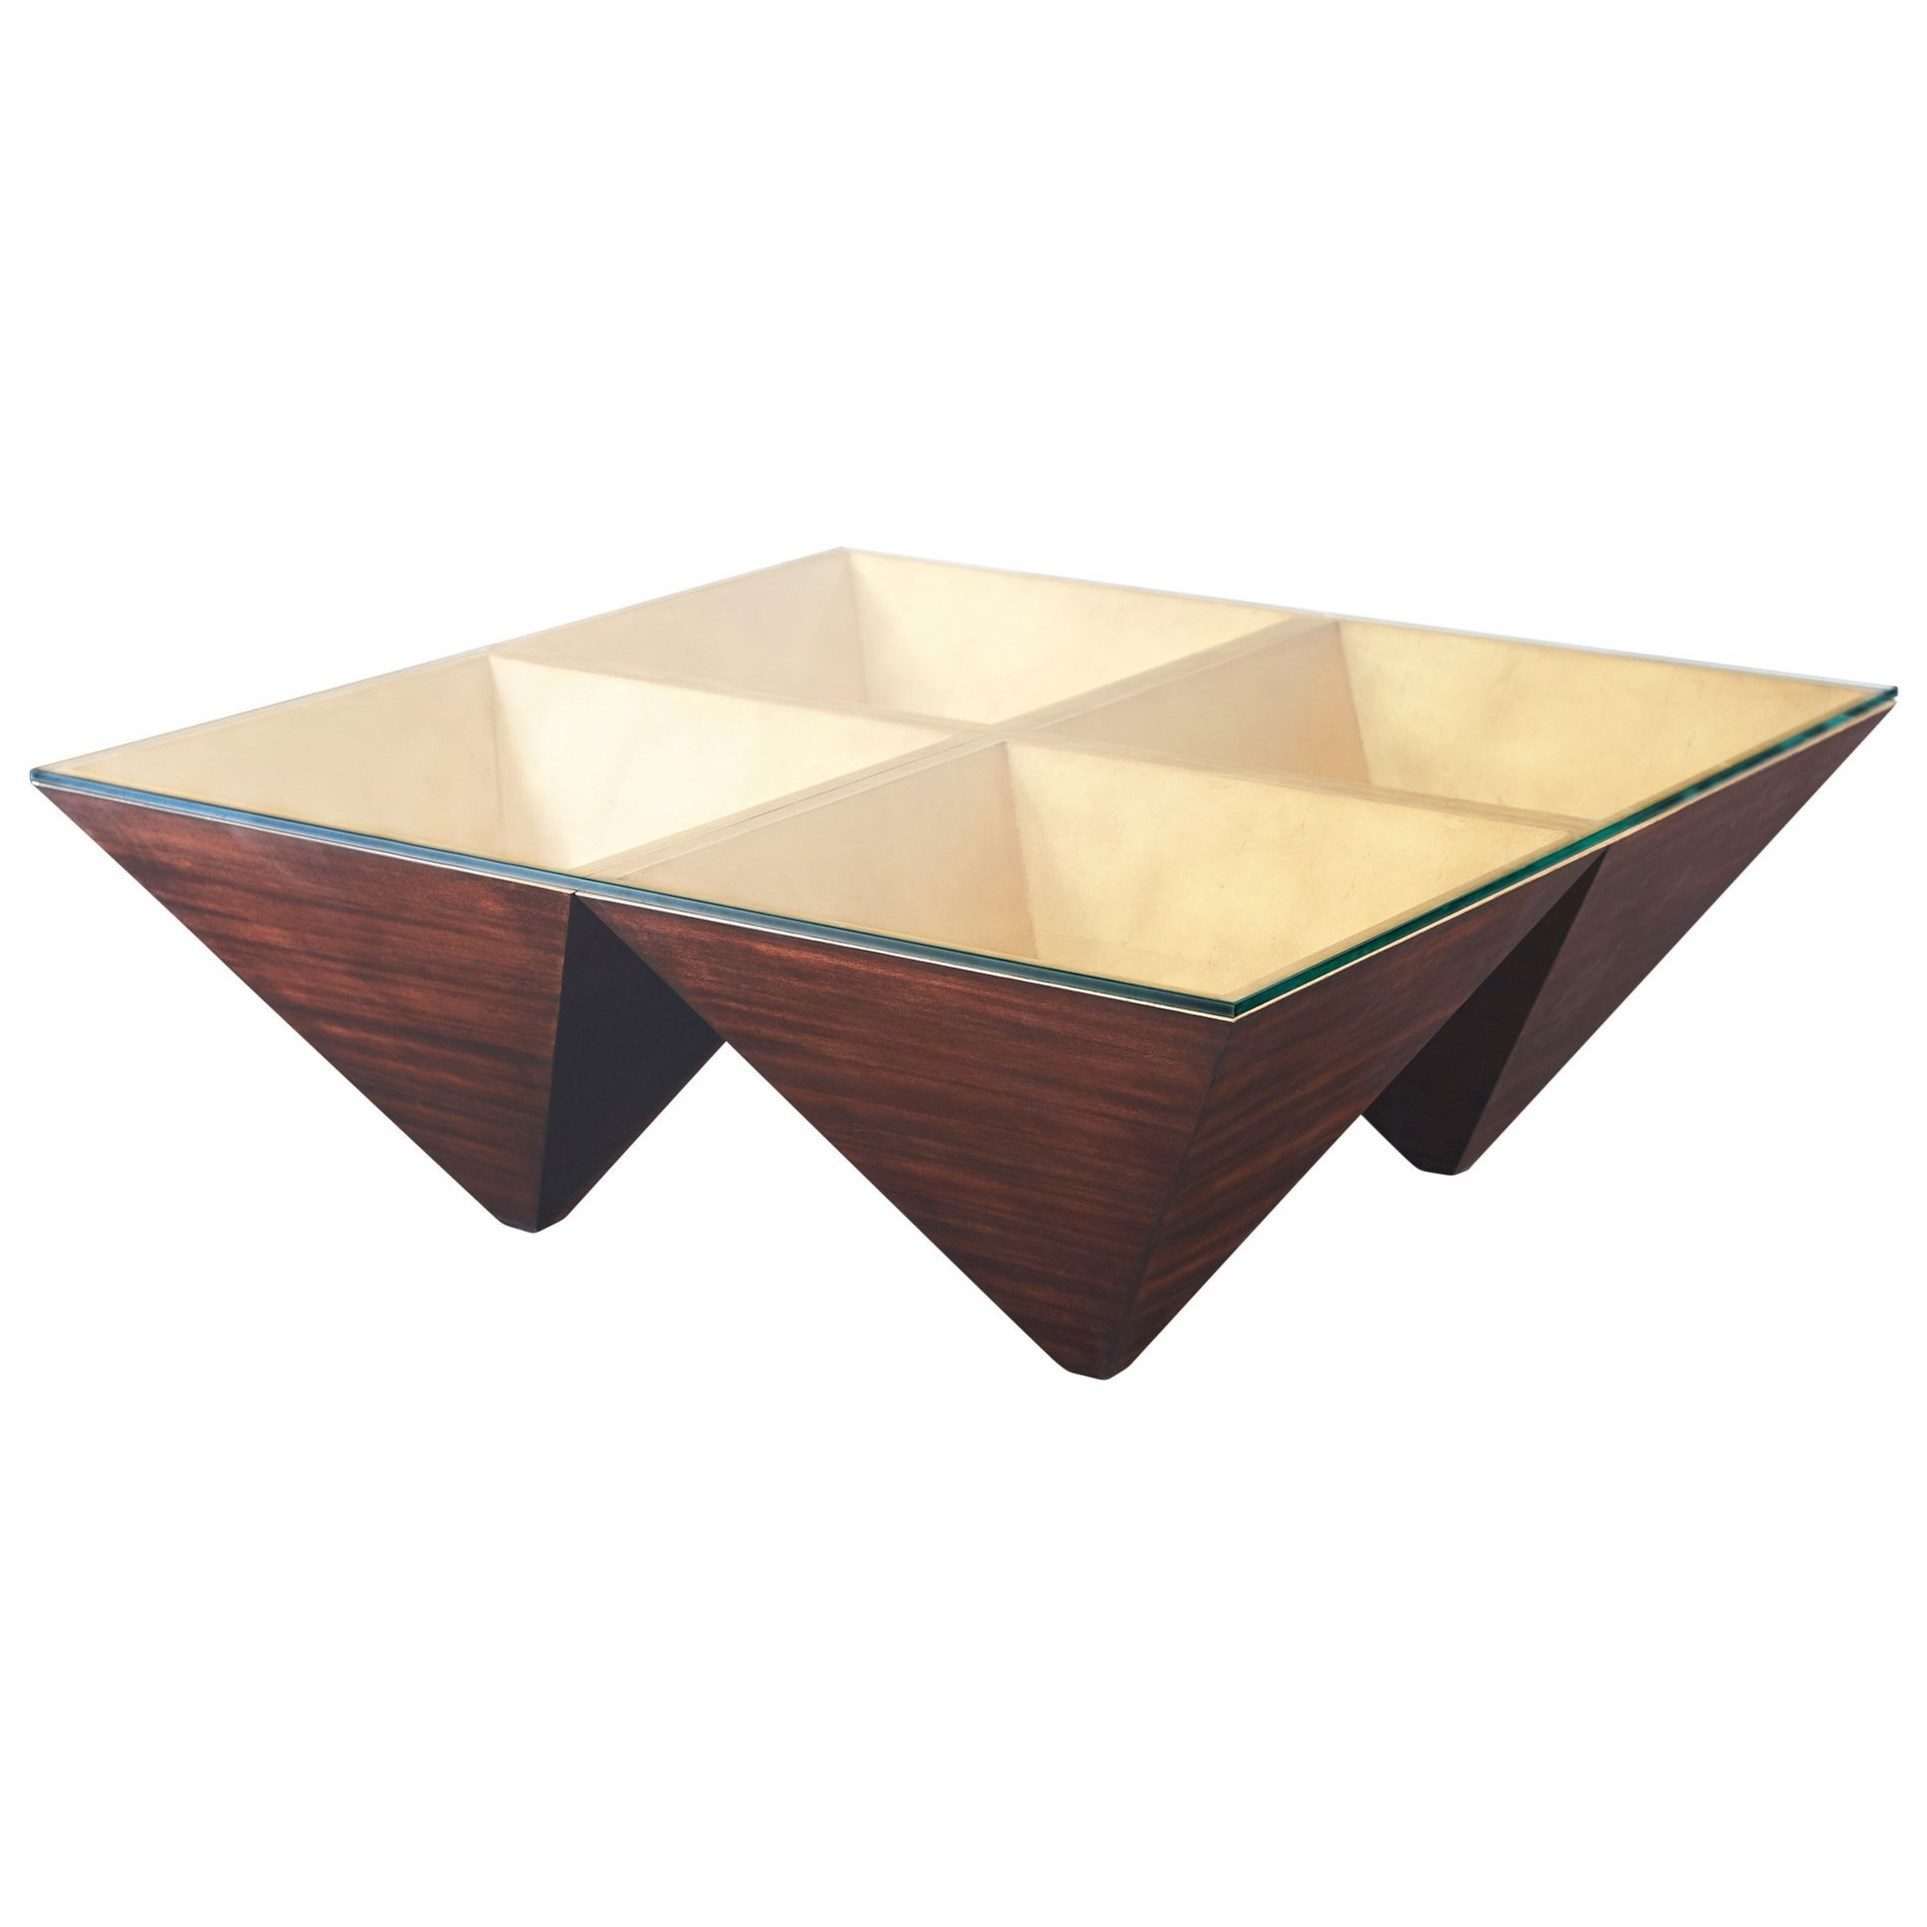 Vanucci Eclectics Pyramidal Points Cocktail Table by Theodore Alexander at Baer's Furniture